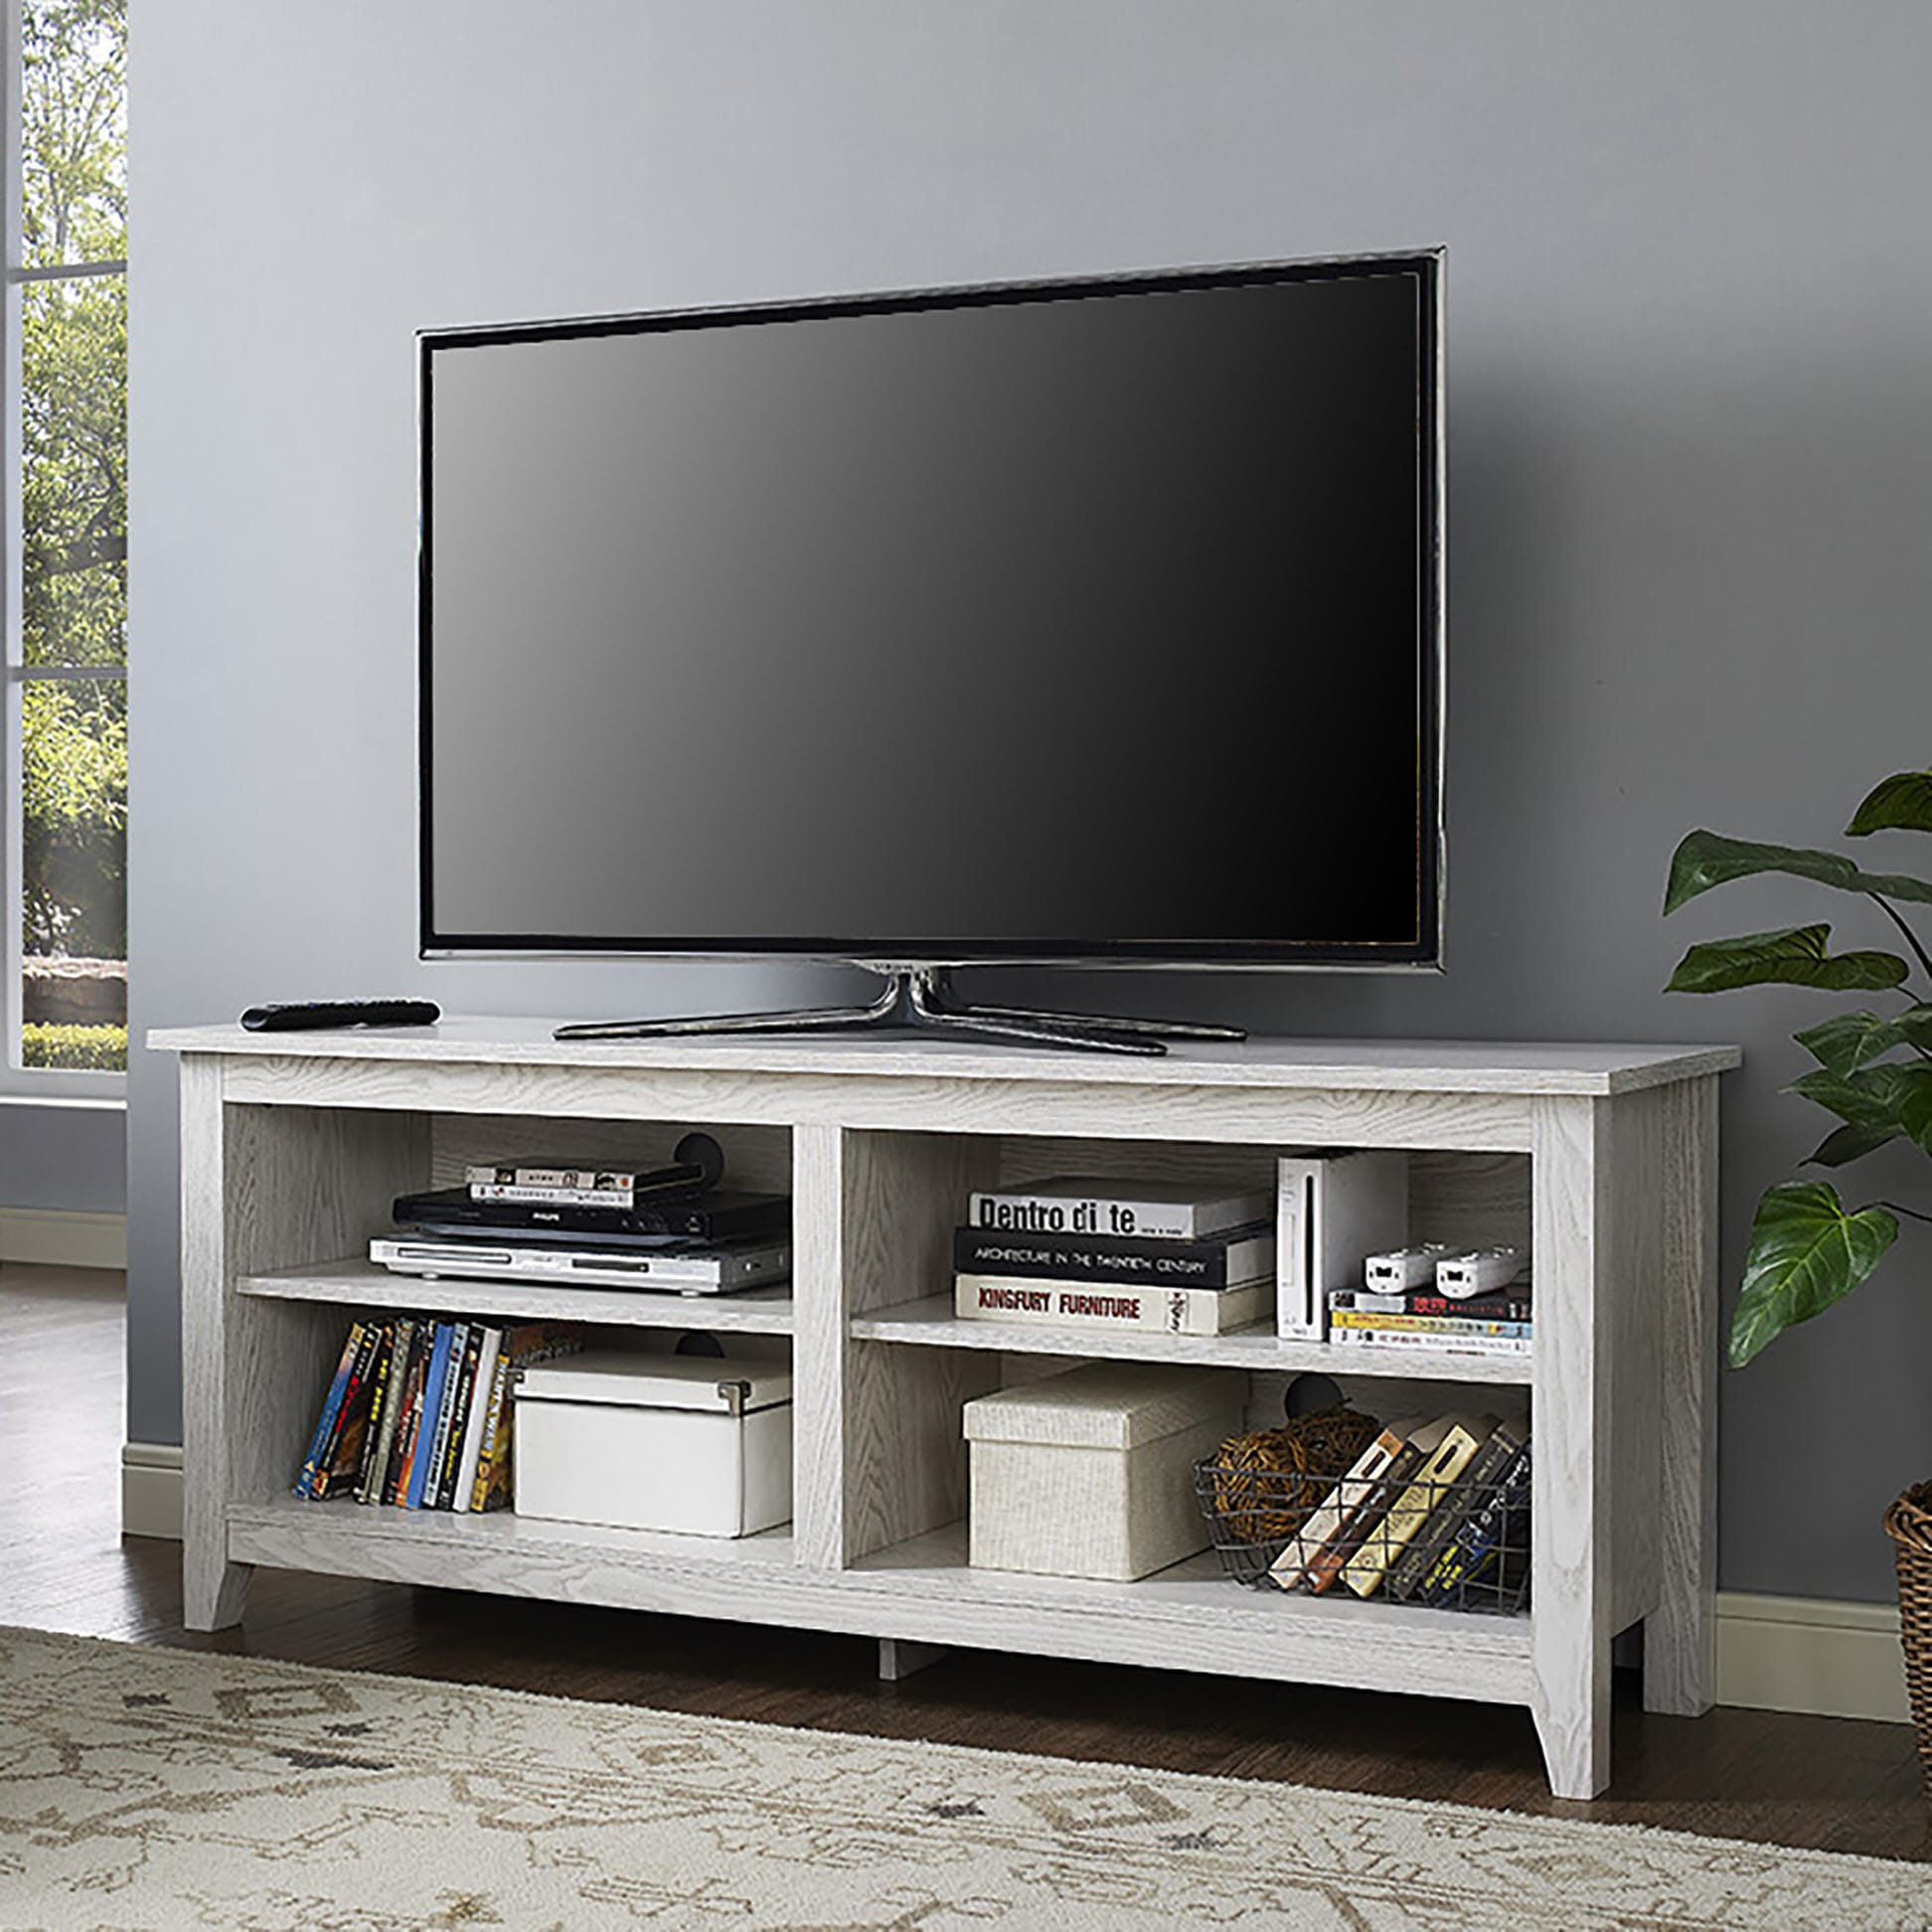 Tv Tables Big Tv Stand: 58 Inch White Wash Wood TV Stand By Walker Edison